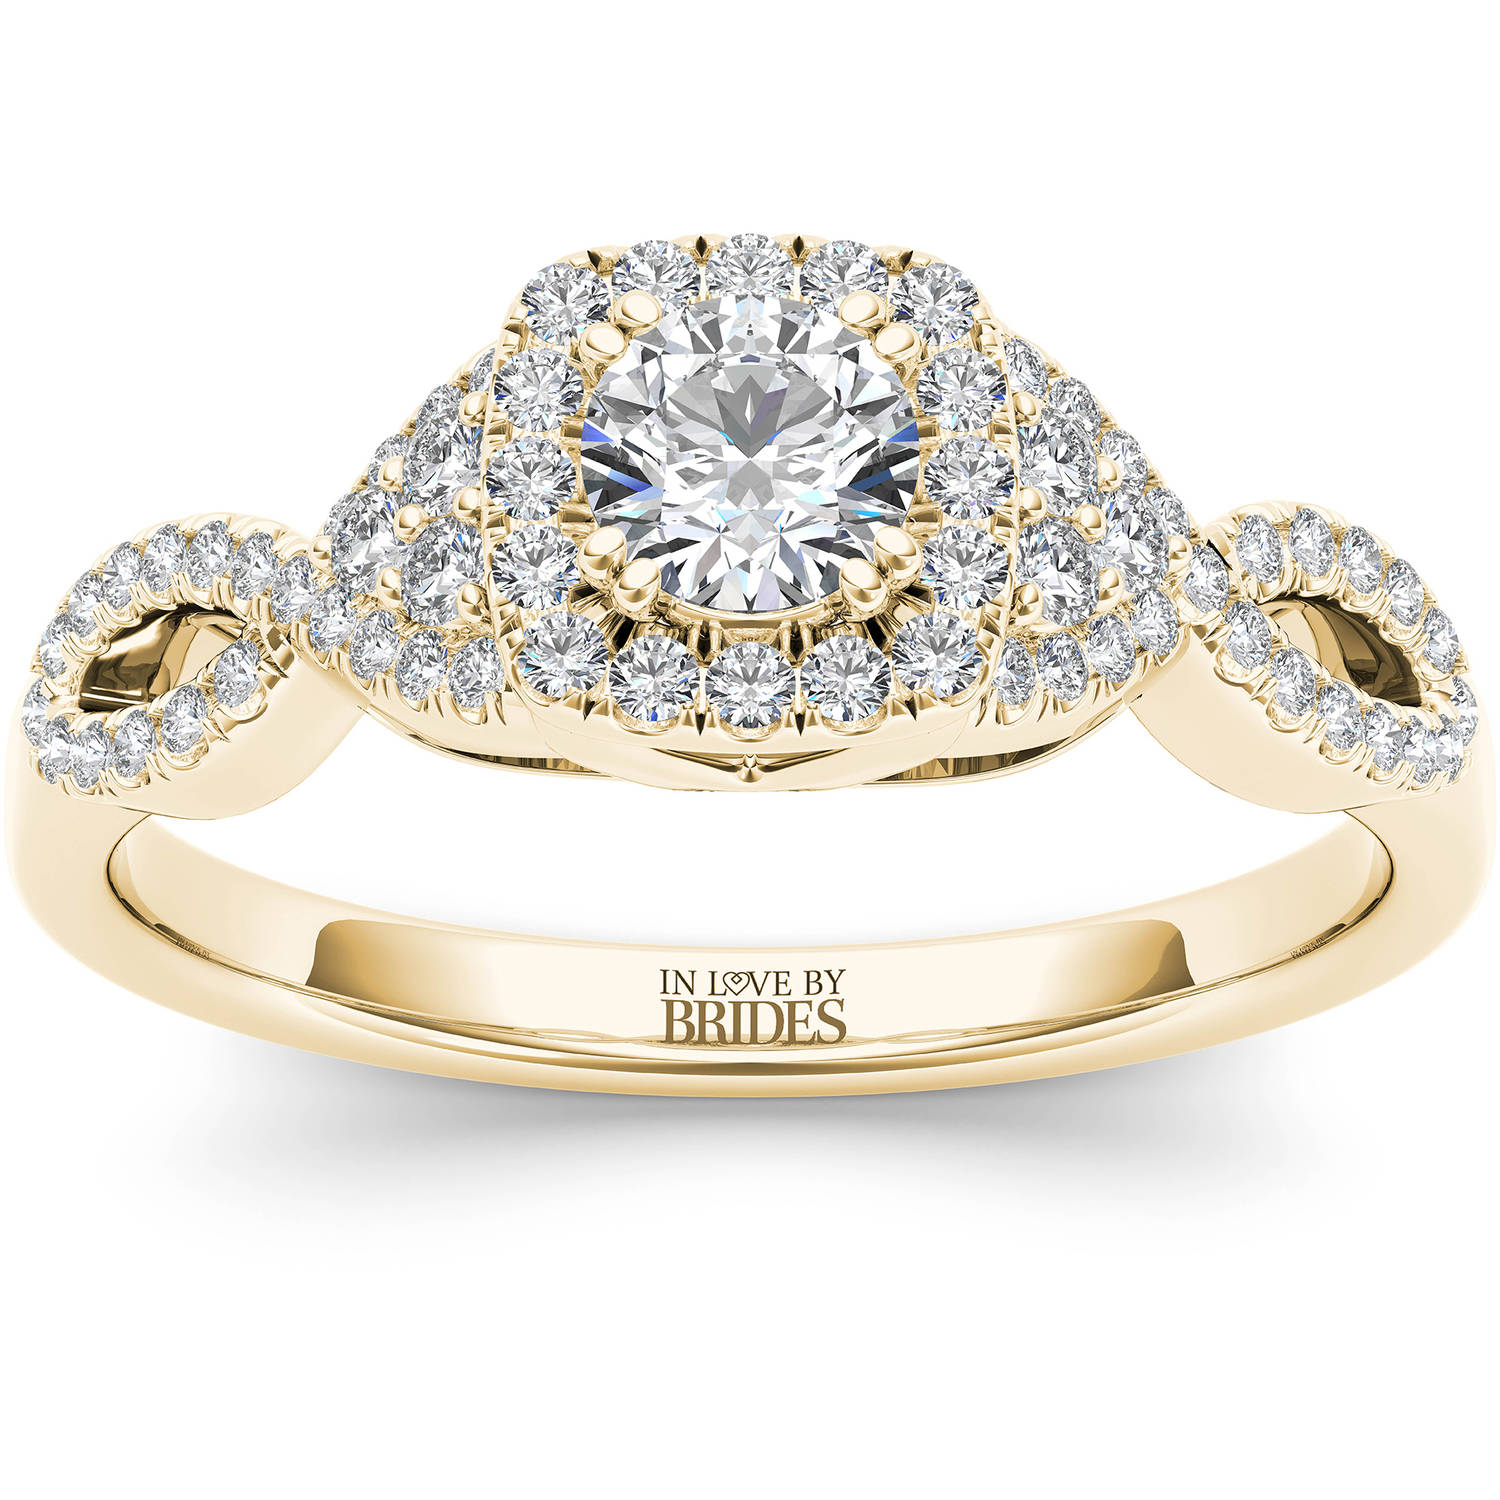 IN LOVE BY BRIDES 1/2 Carat T.W. Certified Diamond Twisted Shank Halo 14kt Yellow Gold Engagement Ring